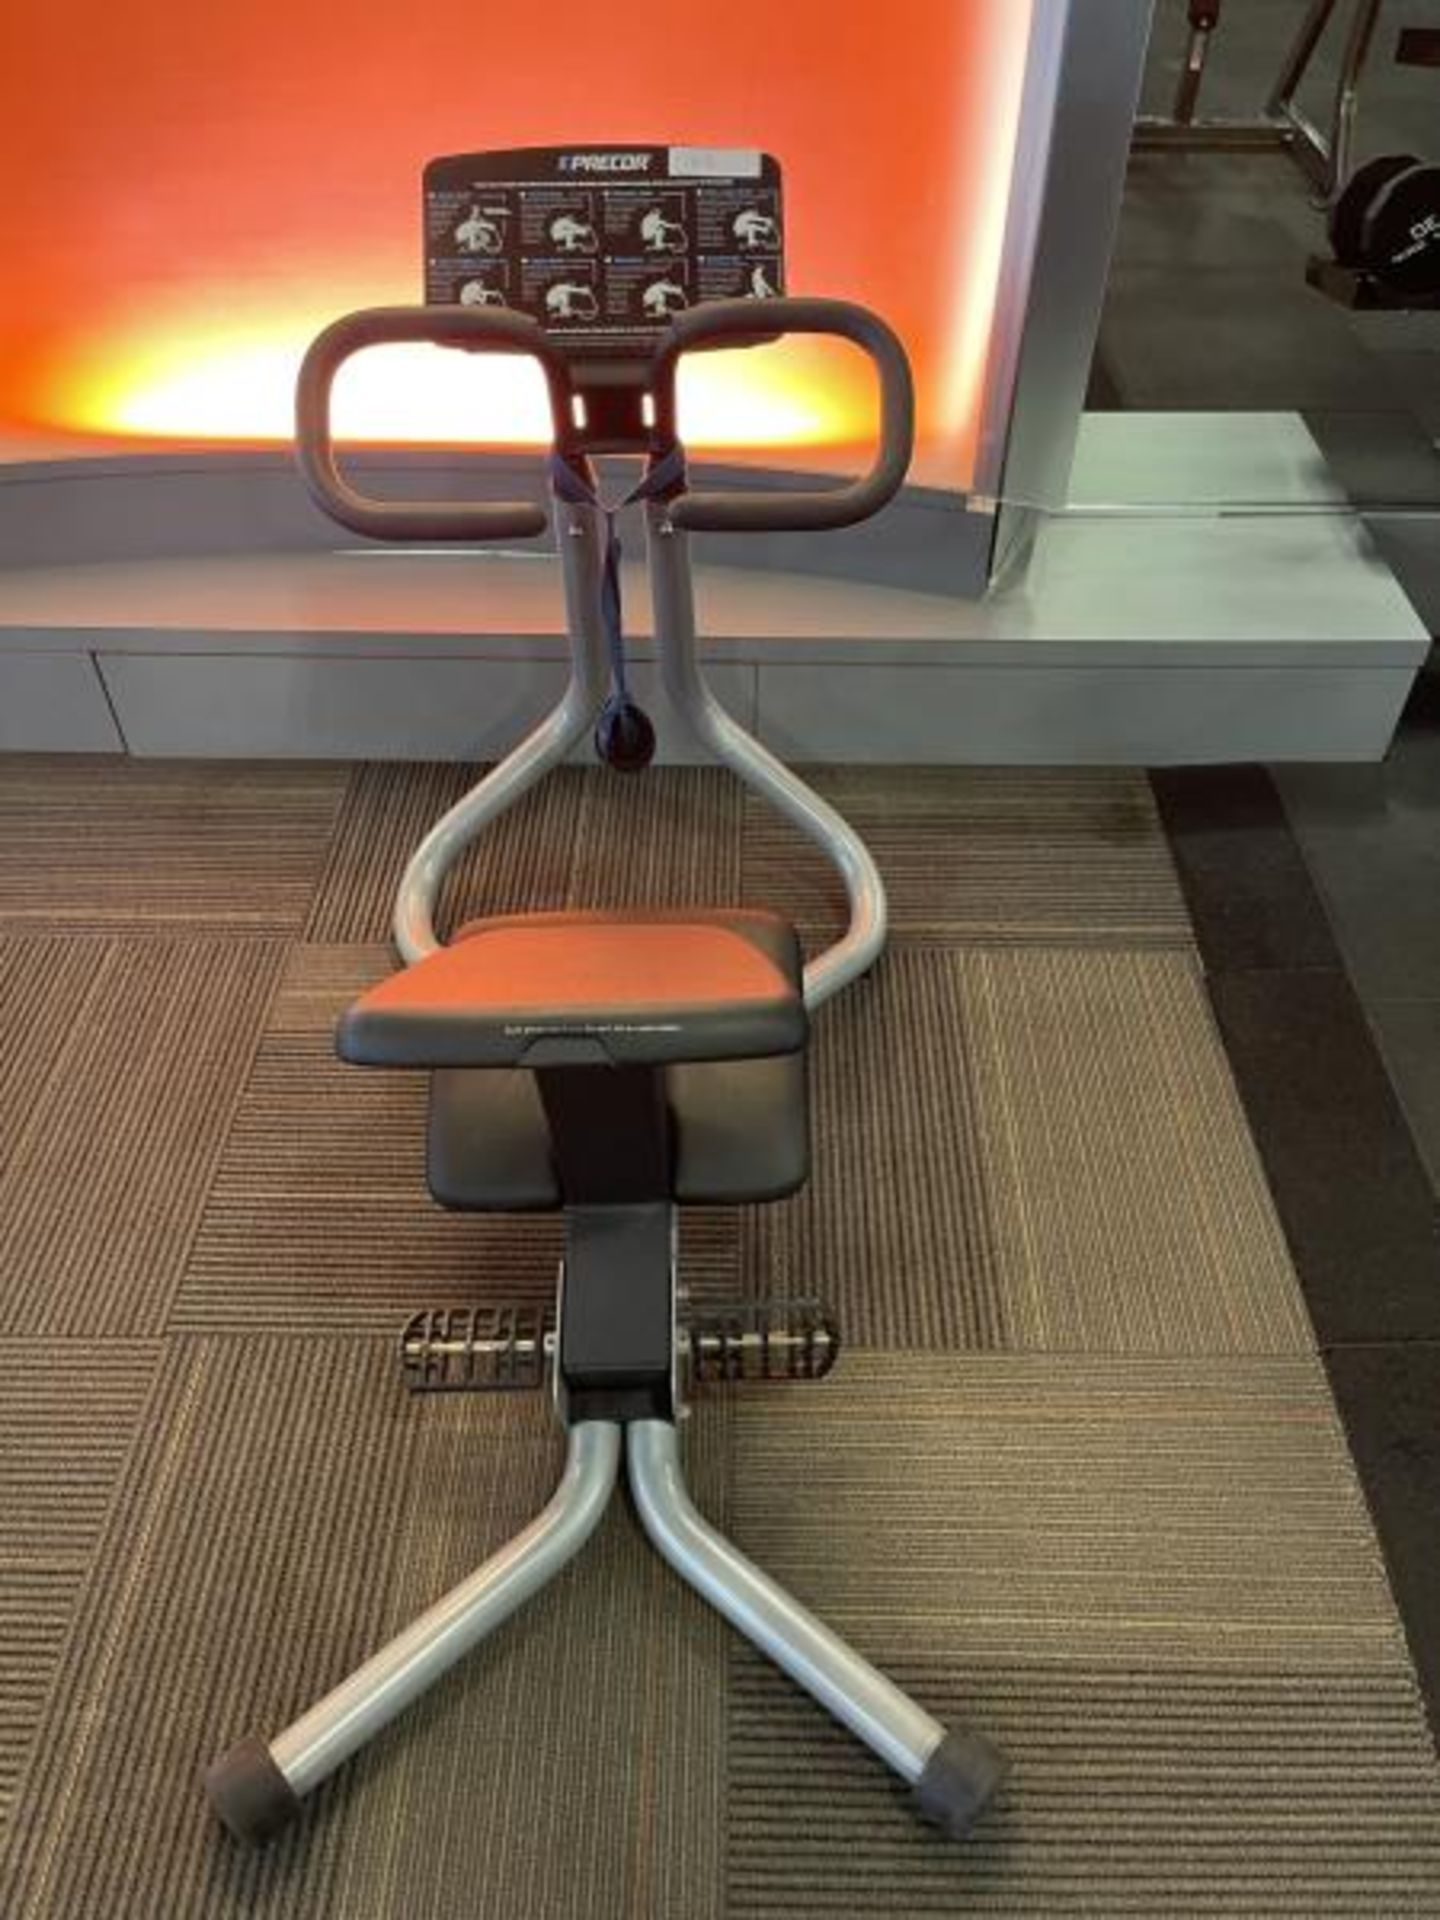 Precor Commerical Stretch Trainer - Image 2 of 3